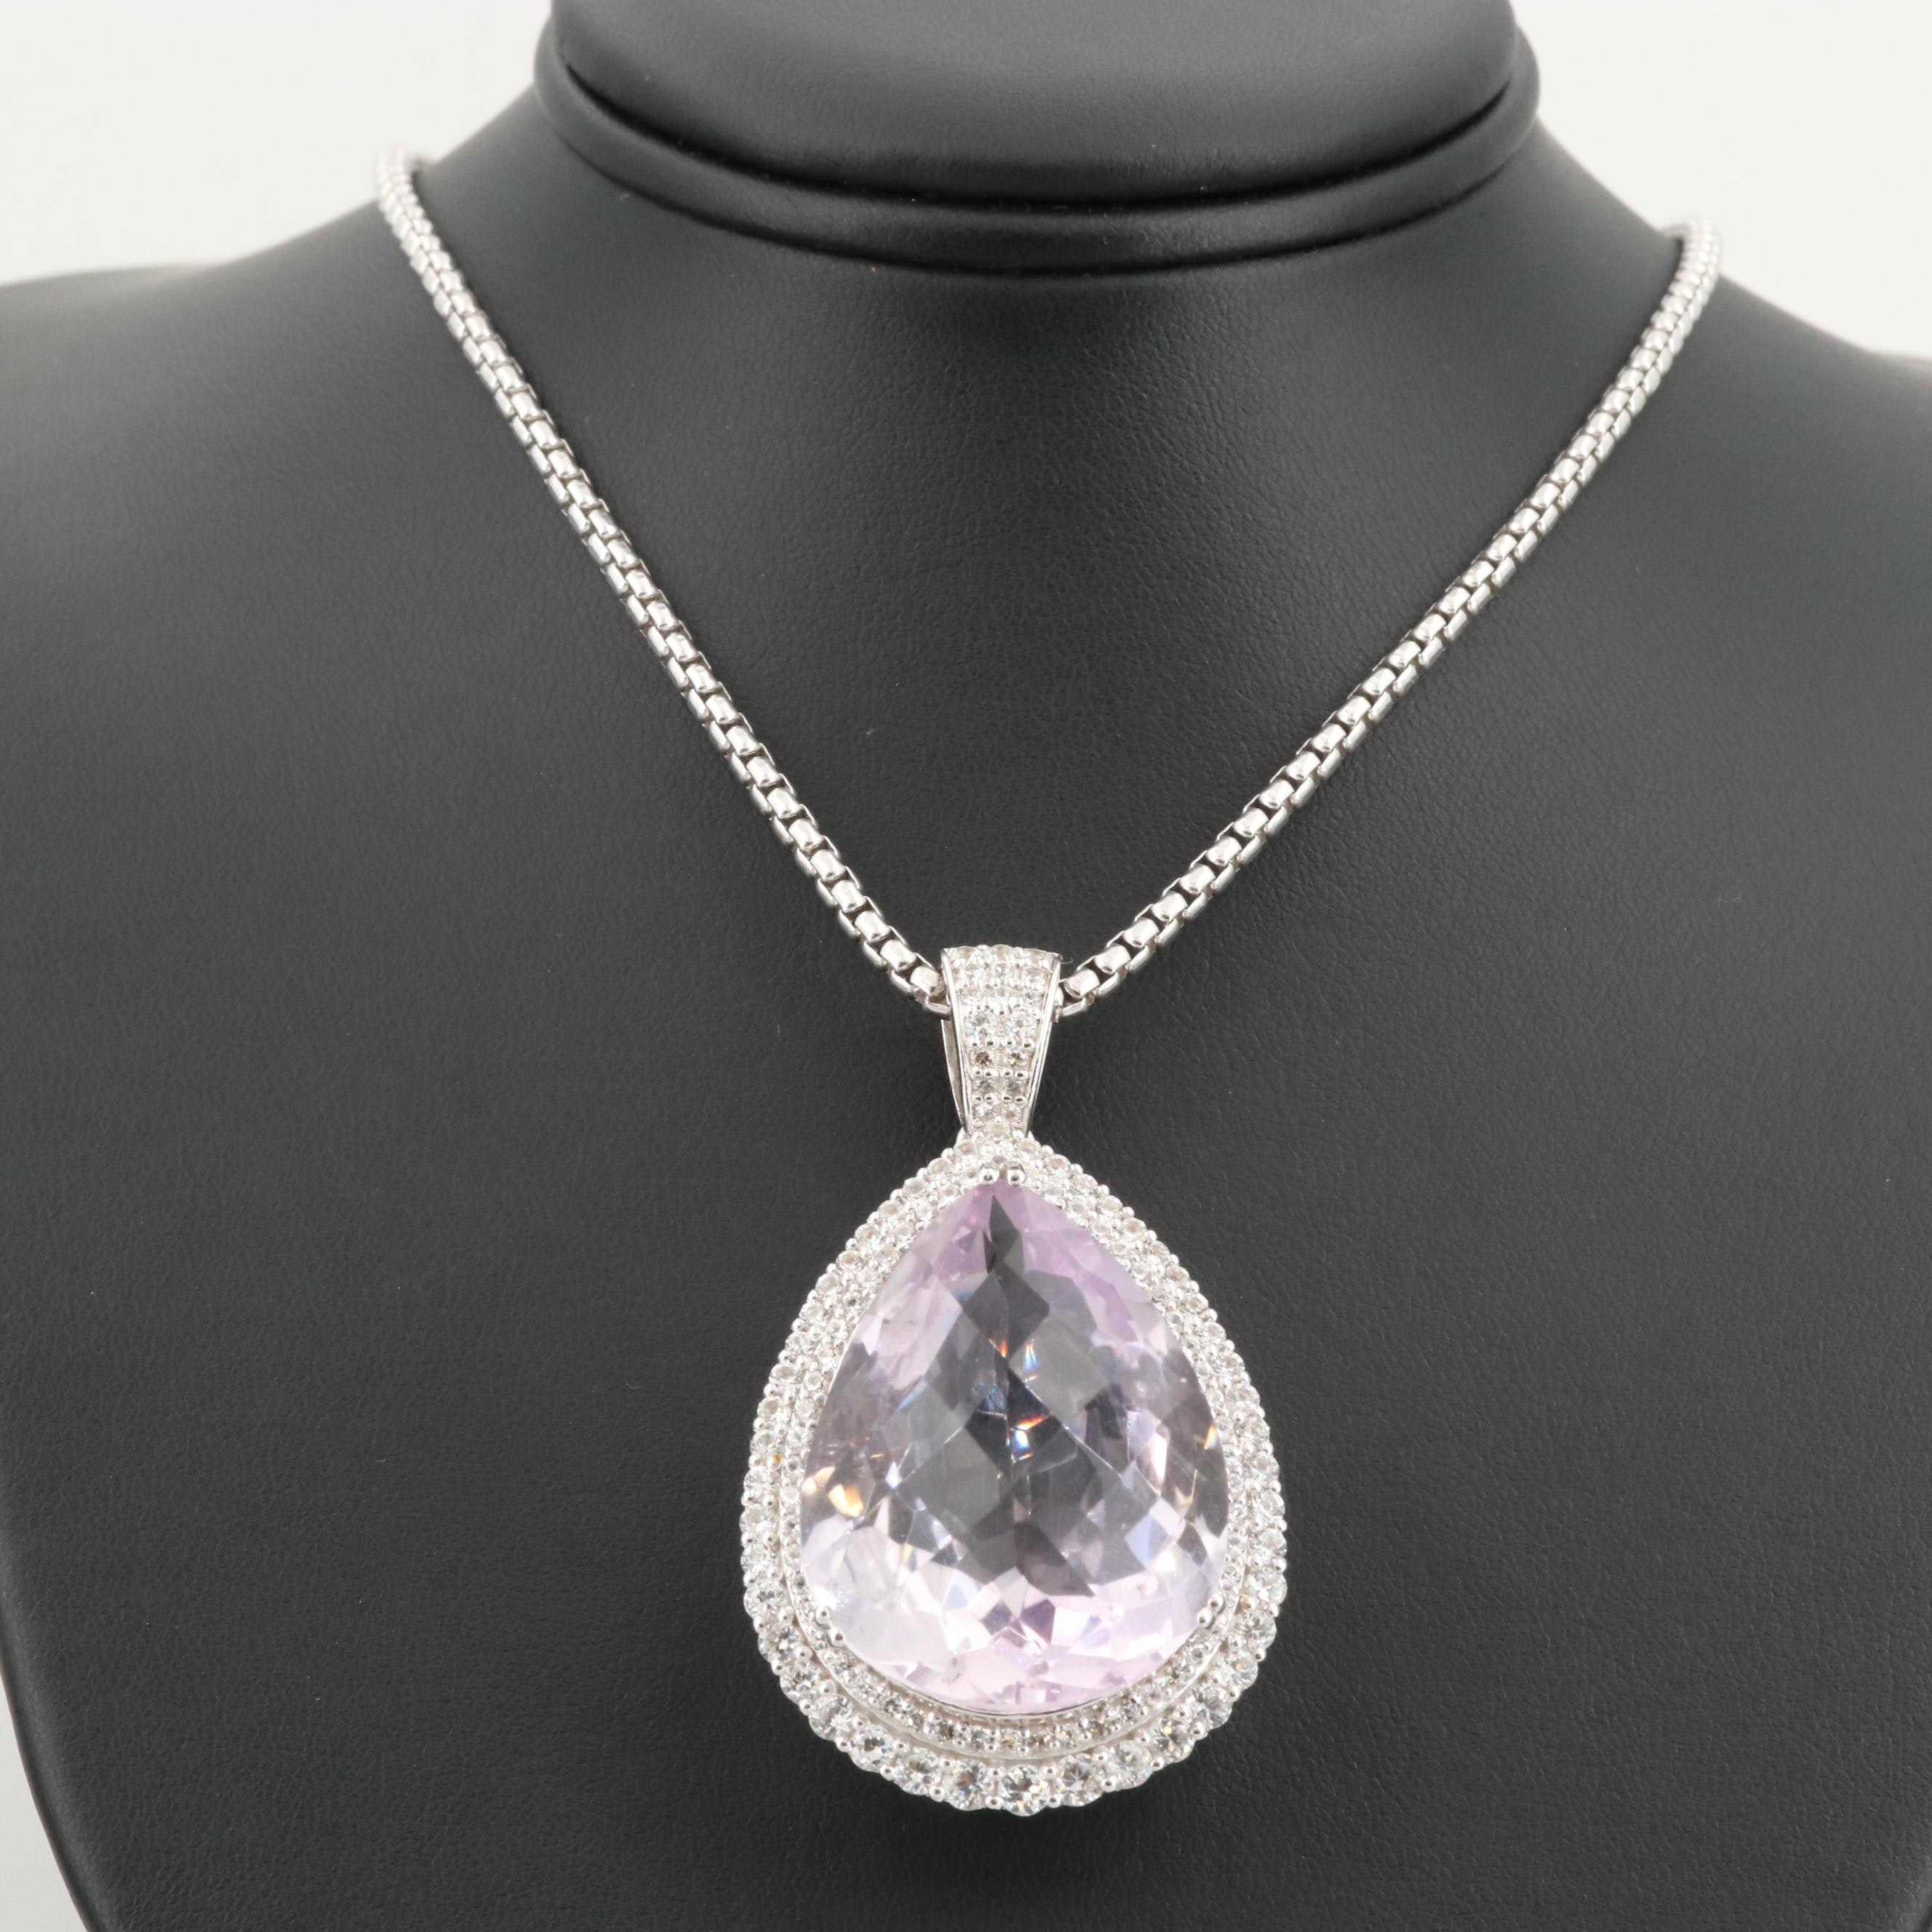 Sterling Silver 98.00 CT Amethyst and White Sapphire Pendant Necklace